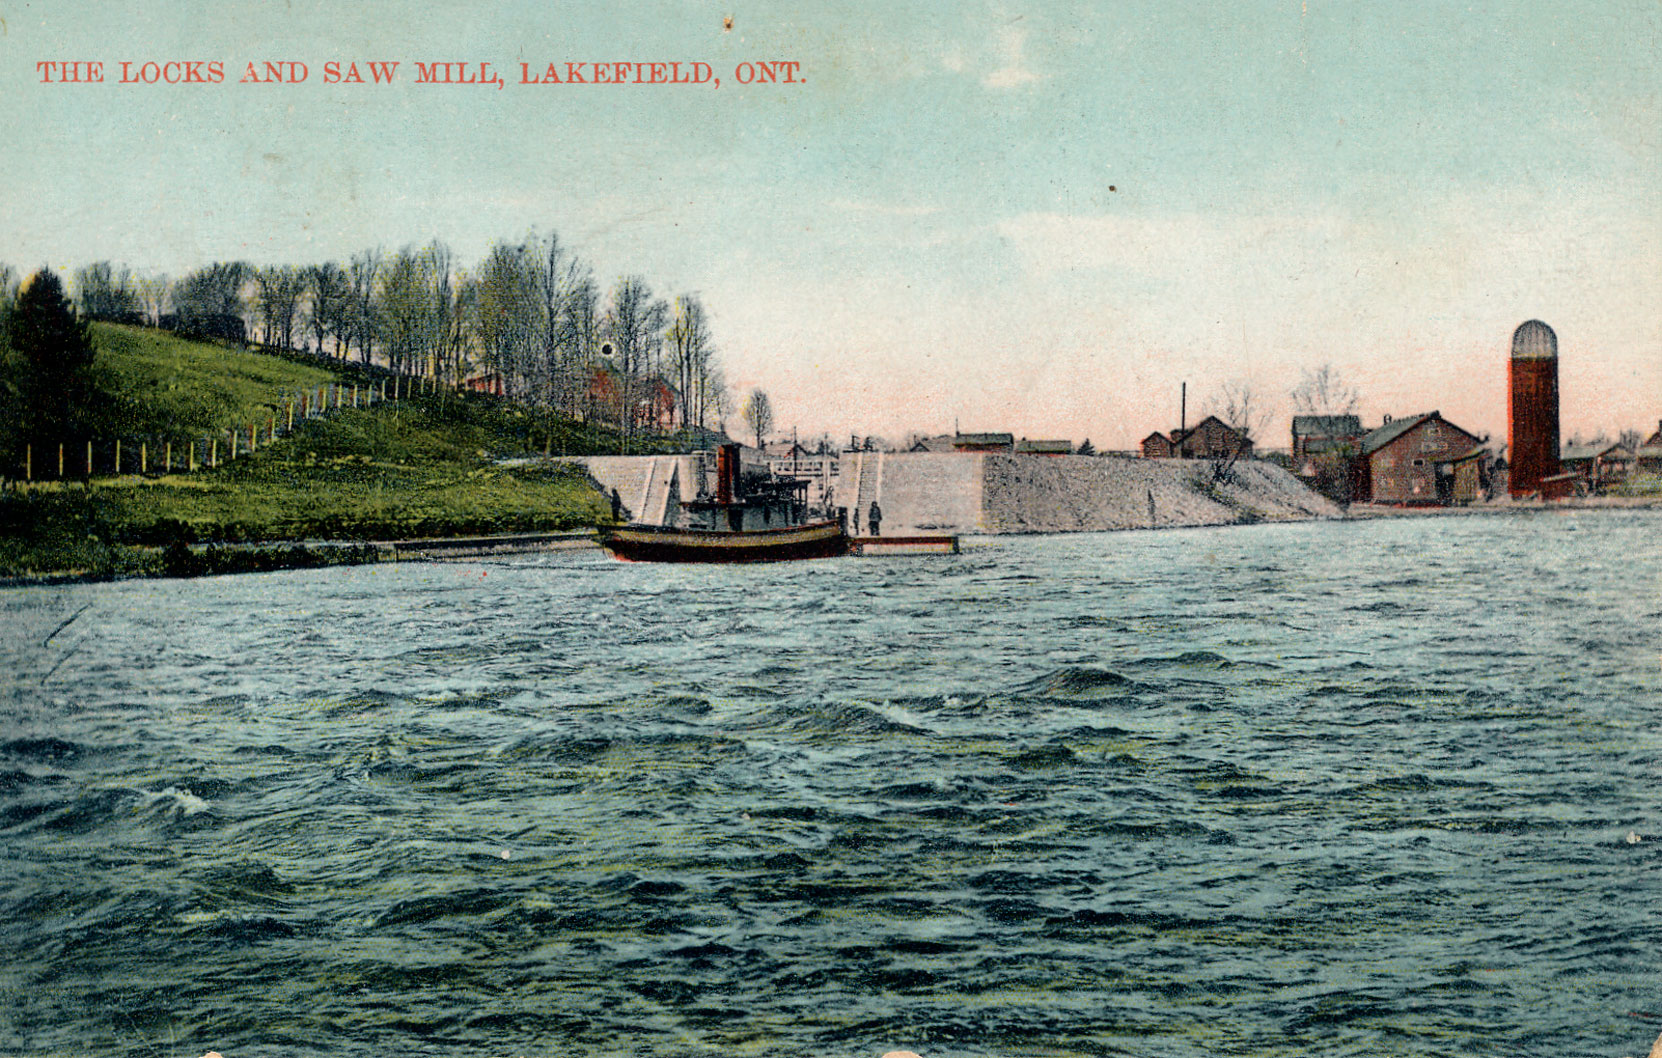 Postcard showing the Trent-Severn Waterway Locks and the Sawmill at Lakefield, Ontario, 1908 (Author's Collection)